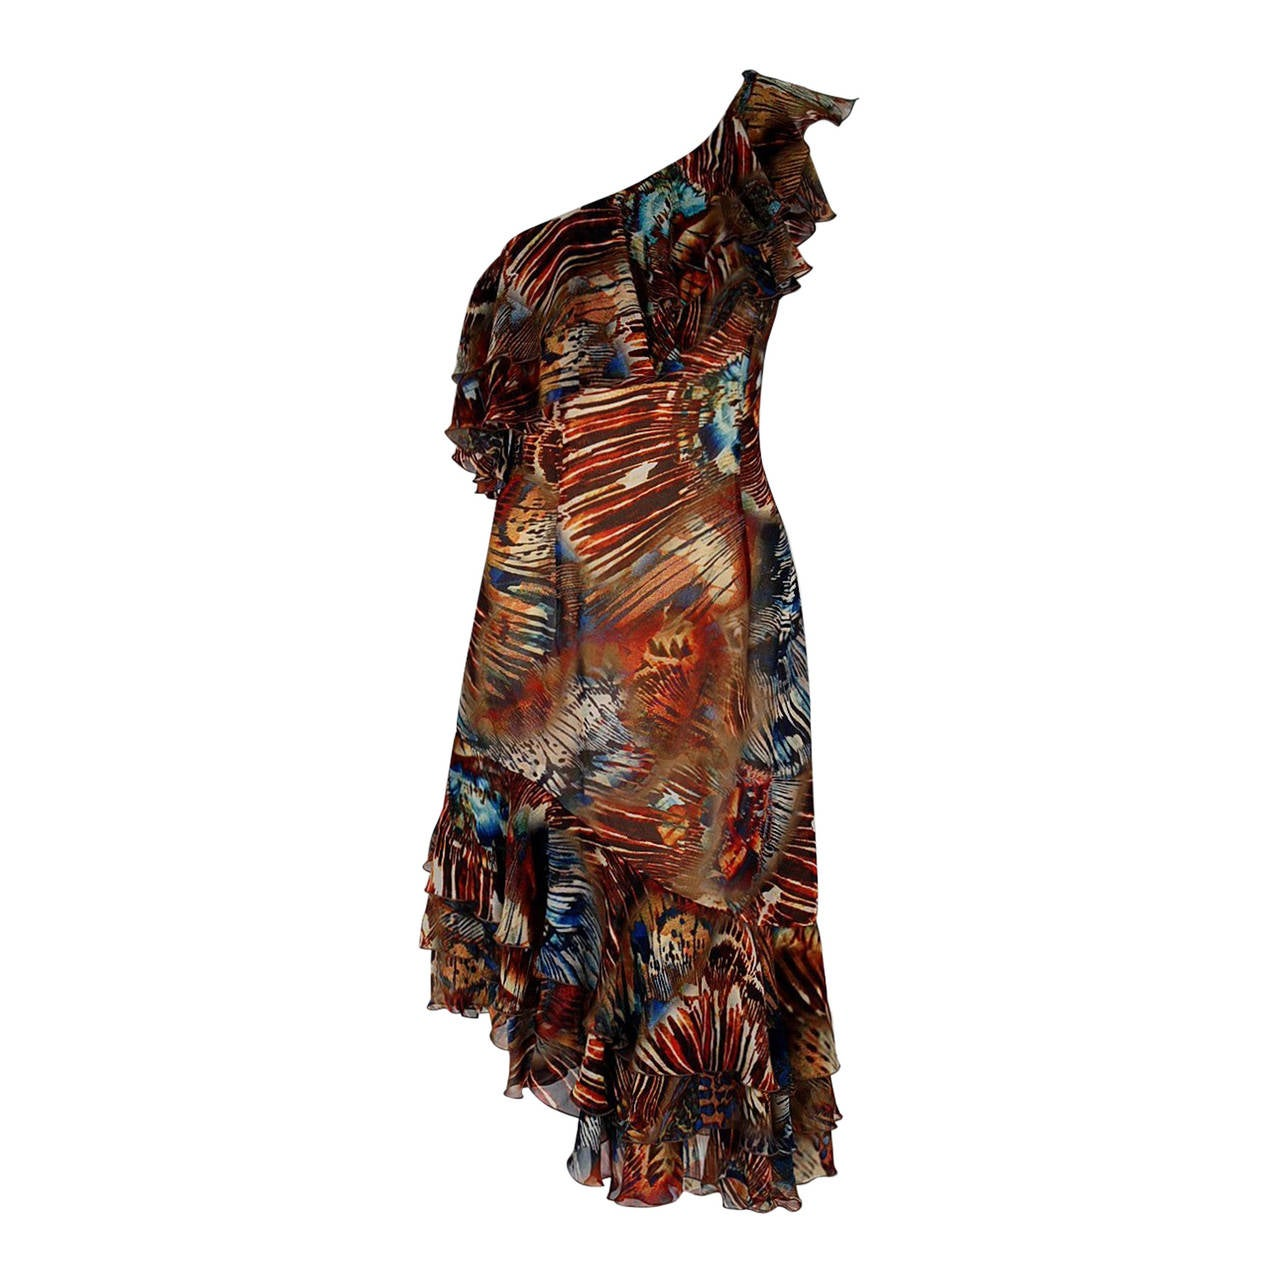 1994 Thierry Mugler Couture Abstract Feather Print Silk One-Shoulder Dress